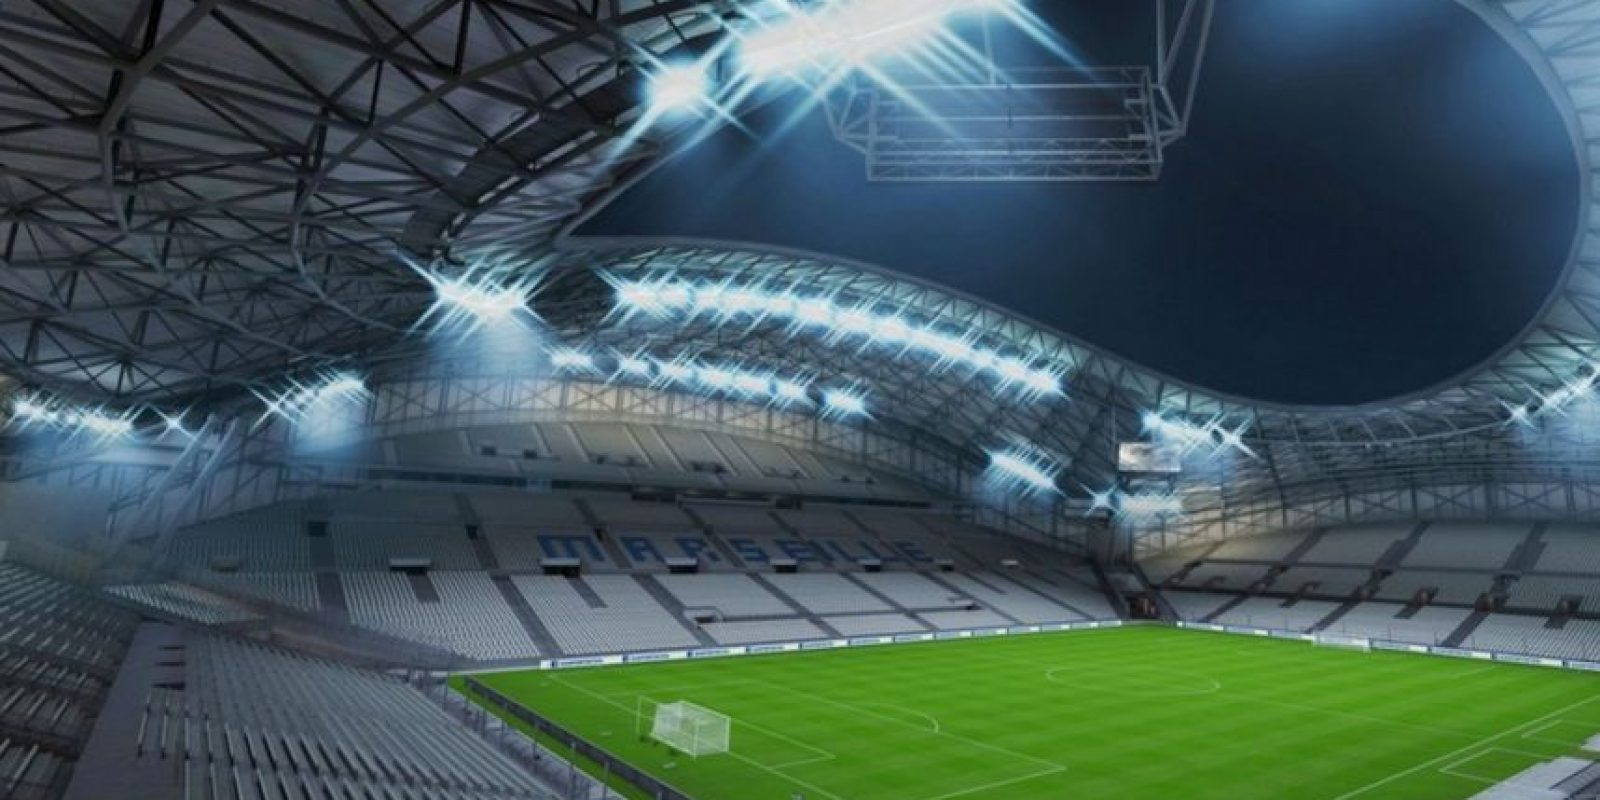 Stade Vélodrome (Olympique de Marsella, Ligue 1) Foto: EA Sports